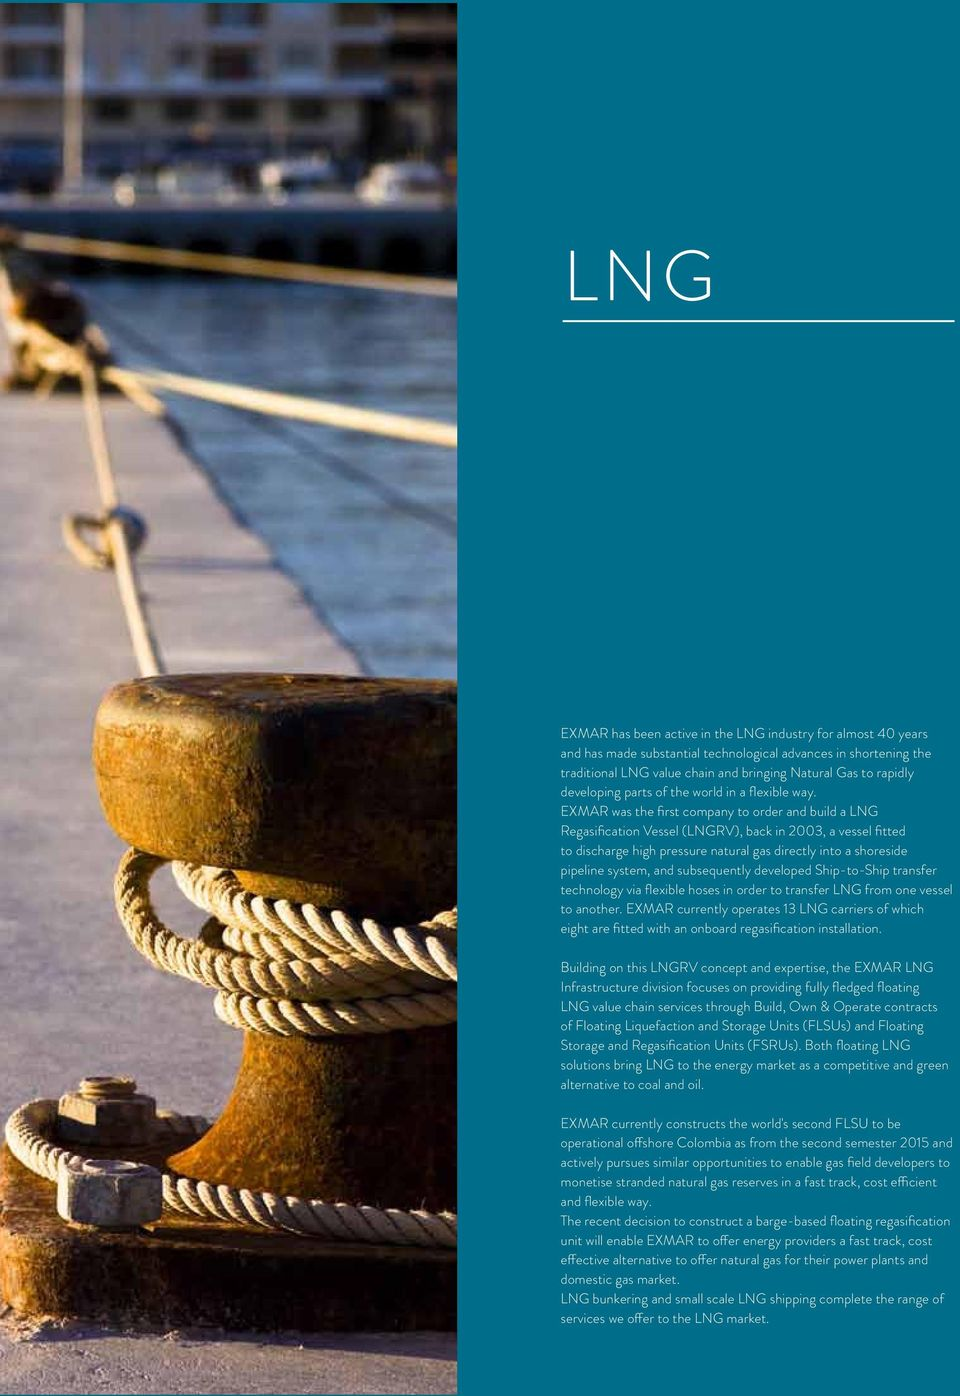 EXMAR was the first company to order and build a LNG Regasification Vessel (LNGRV), back in 2003, a vessel fitted to discharge high pressure natural gas directly into a shoreside pipeline system, and